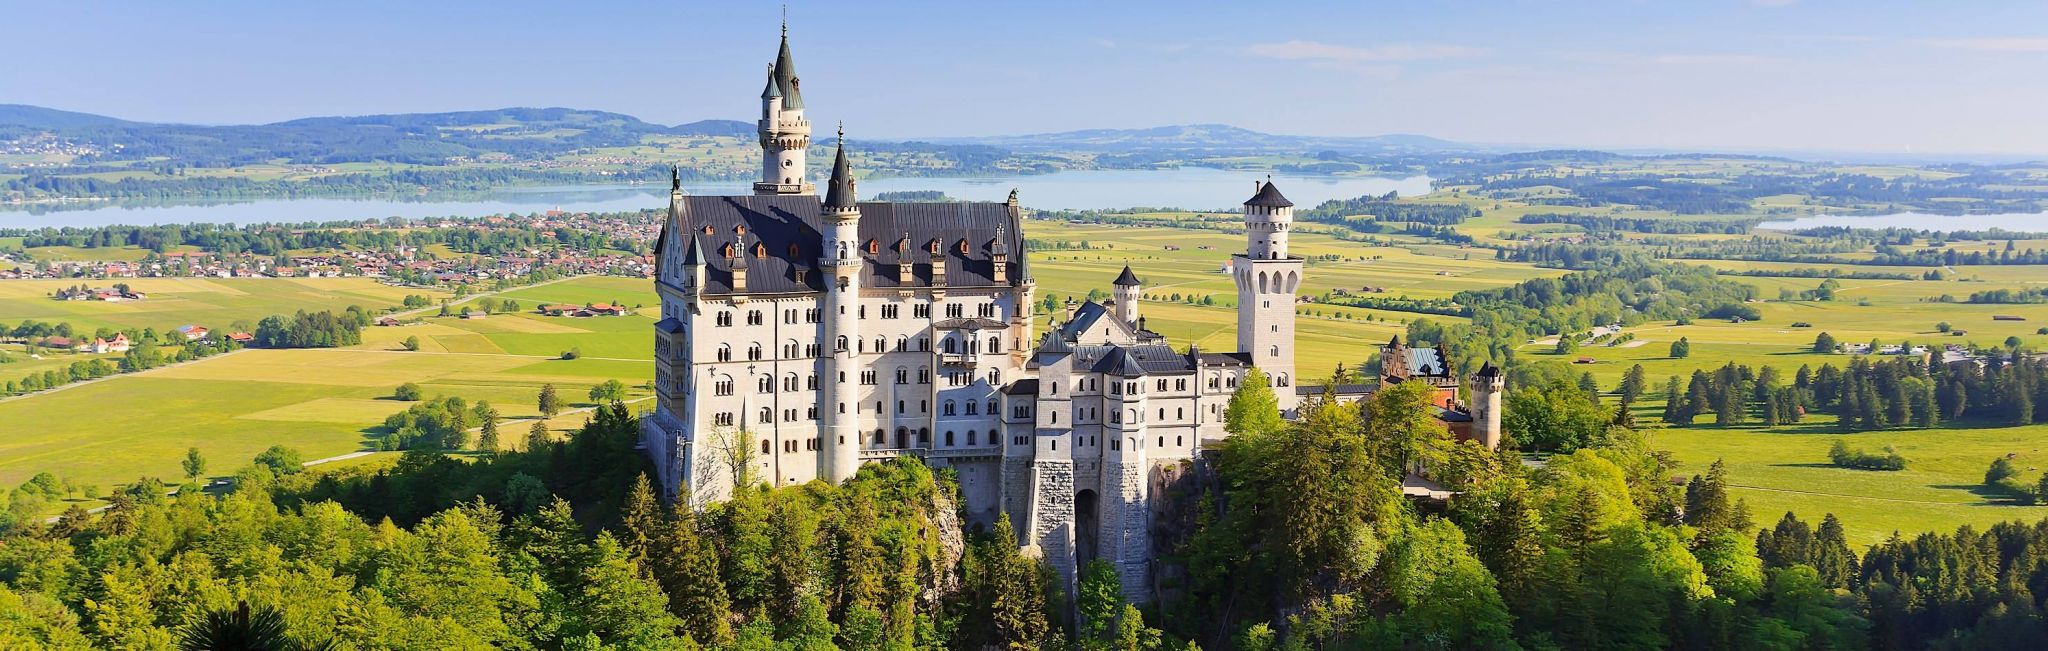 Germany Tours From Munich